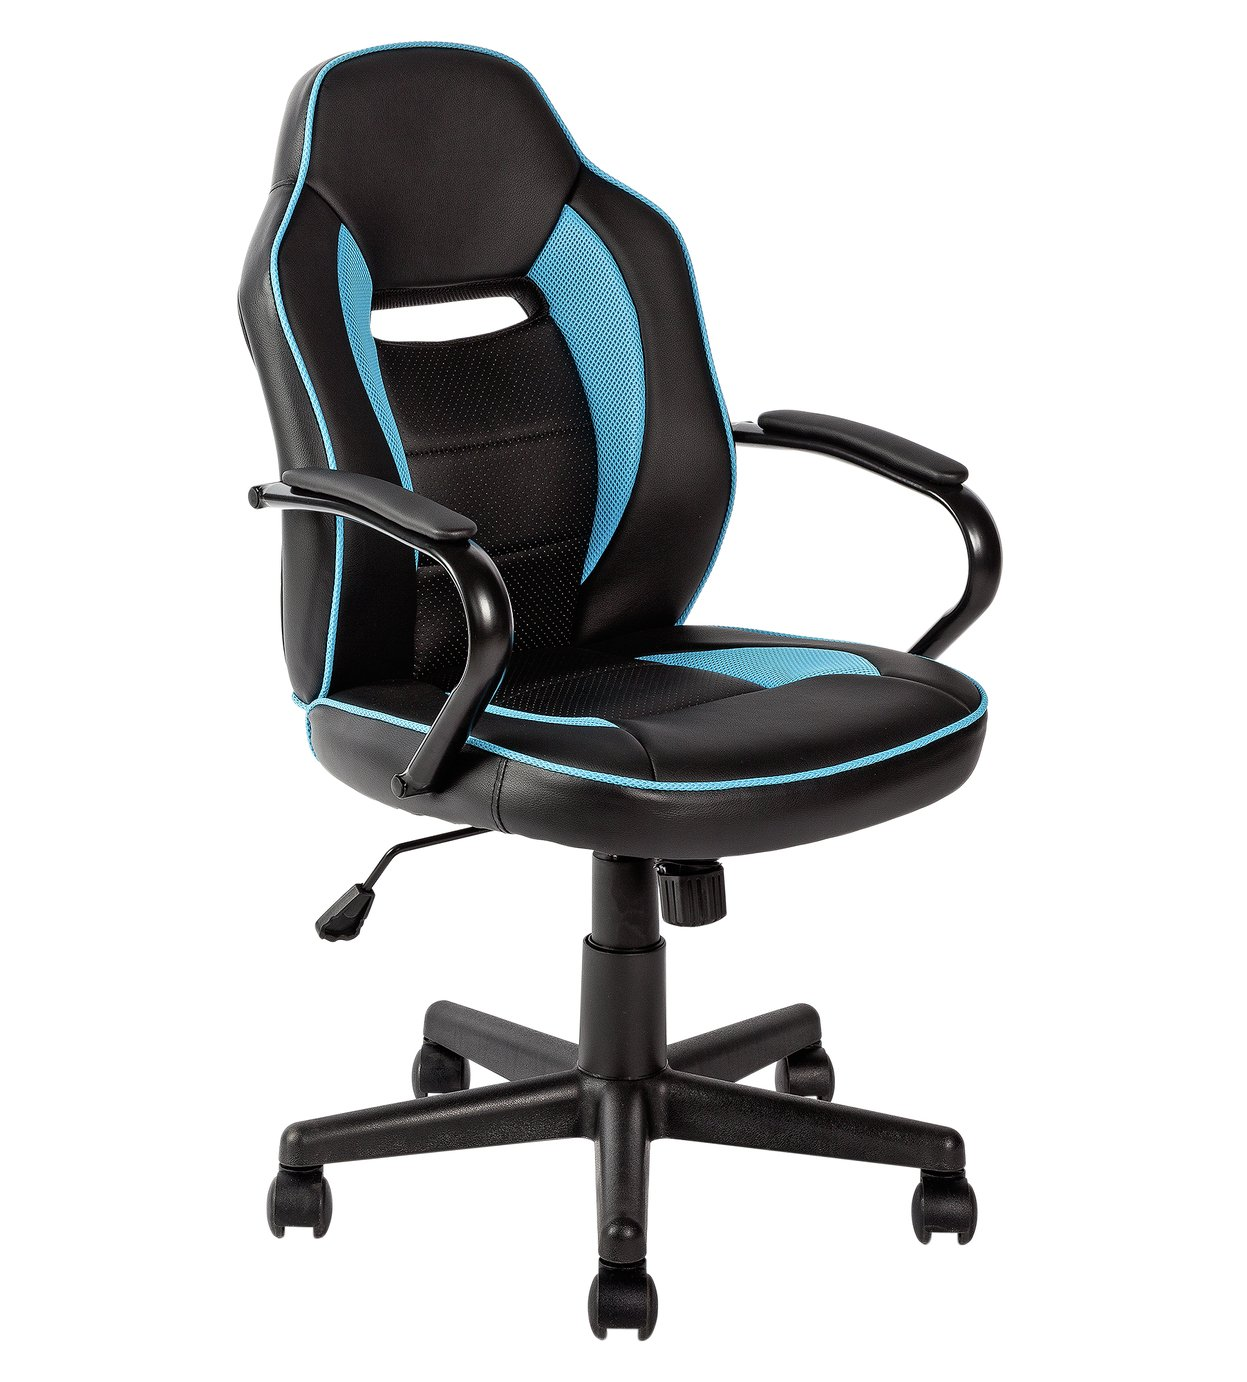 home-mid-back-office-gaming-chair-blue-black